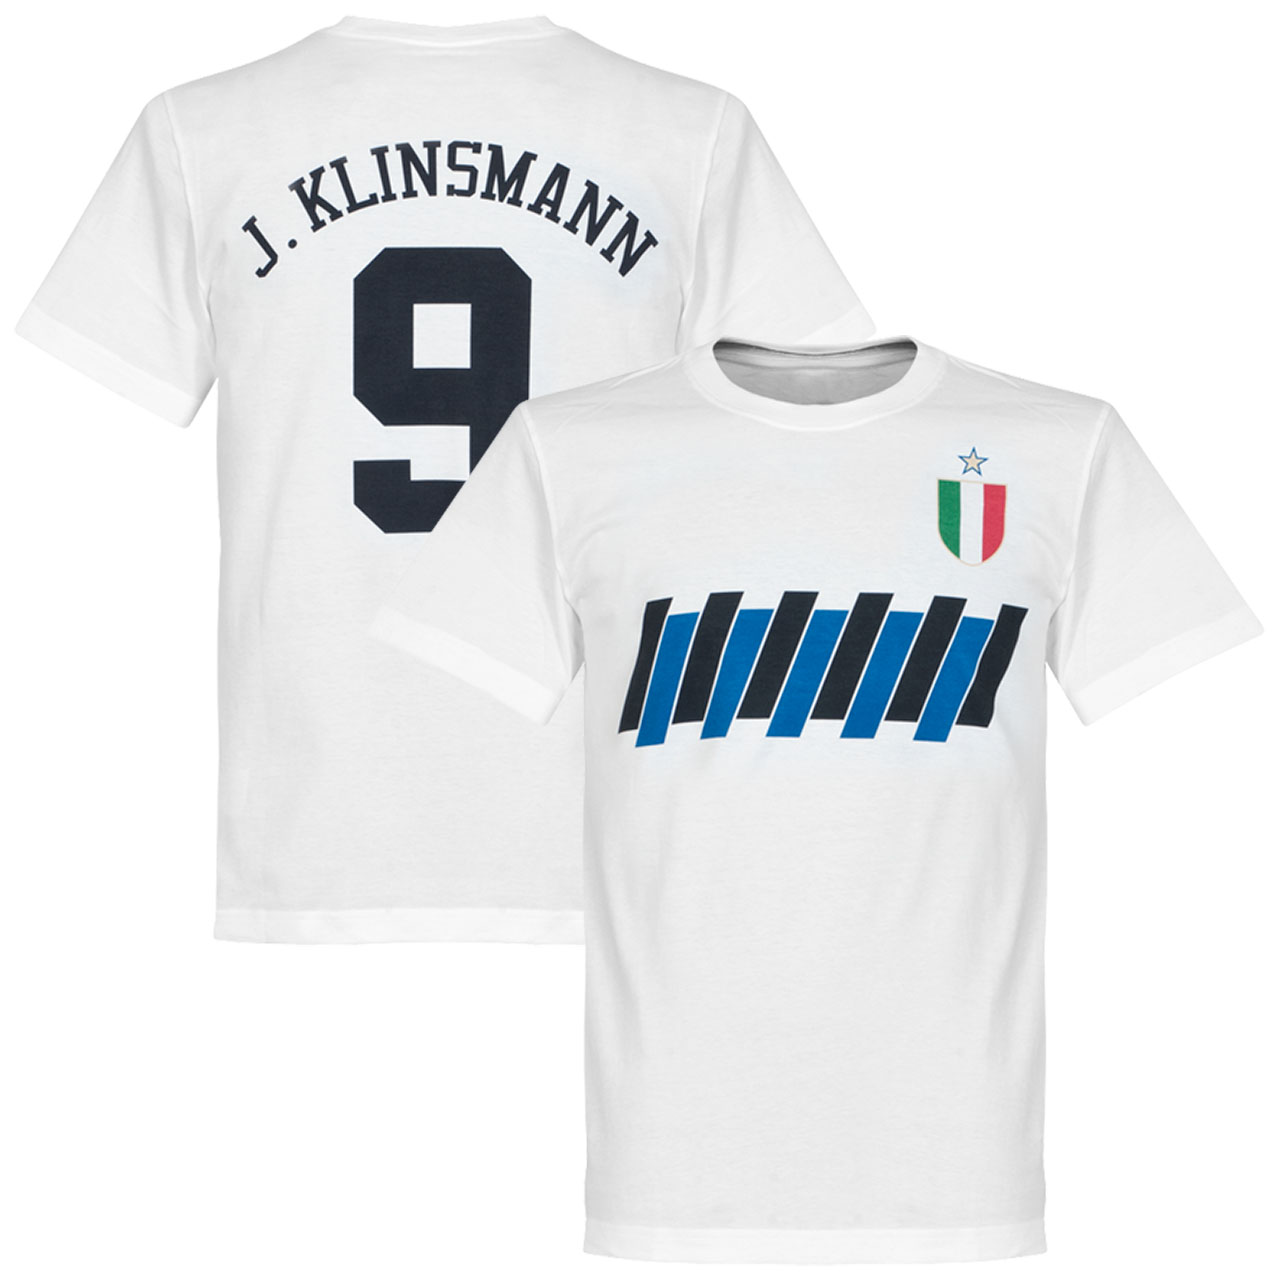 Inter Klinsmann Graphic Tee - White - XXXL